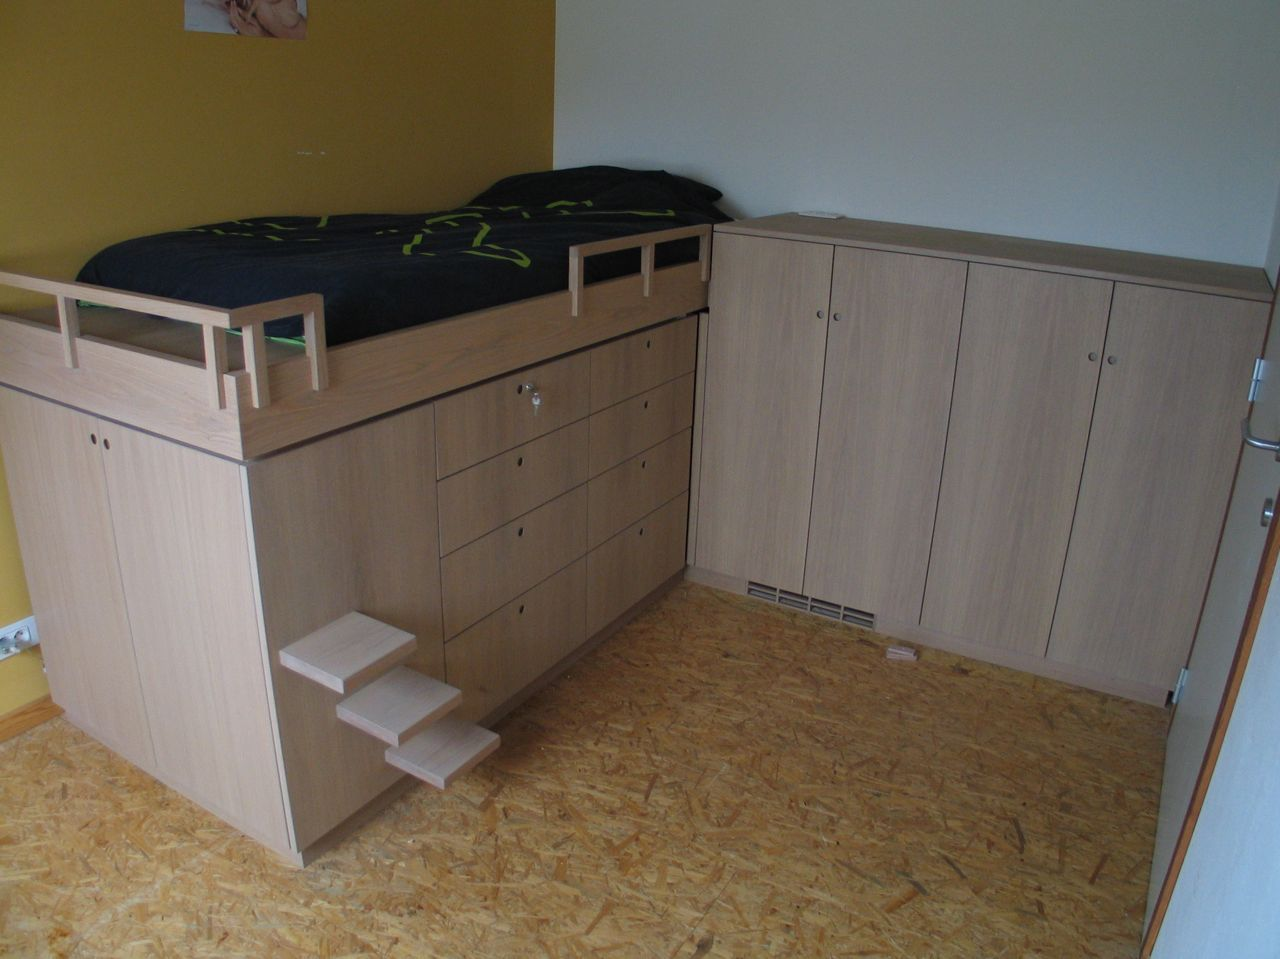 bed en kasten frits kuitenbrouwer tailor made furniture